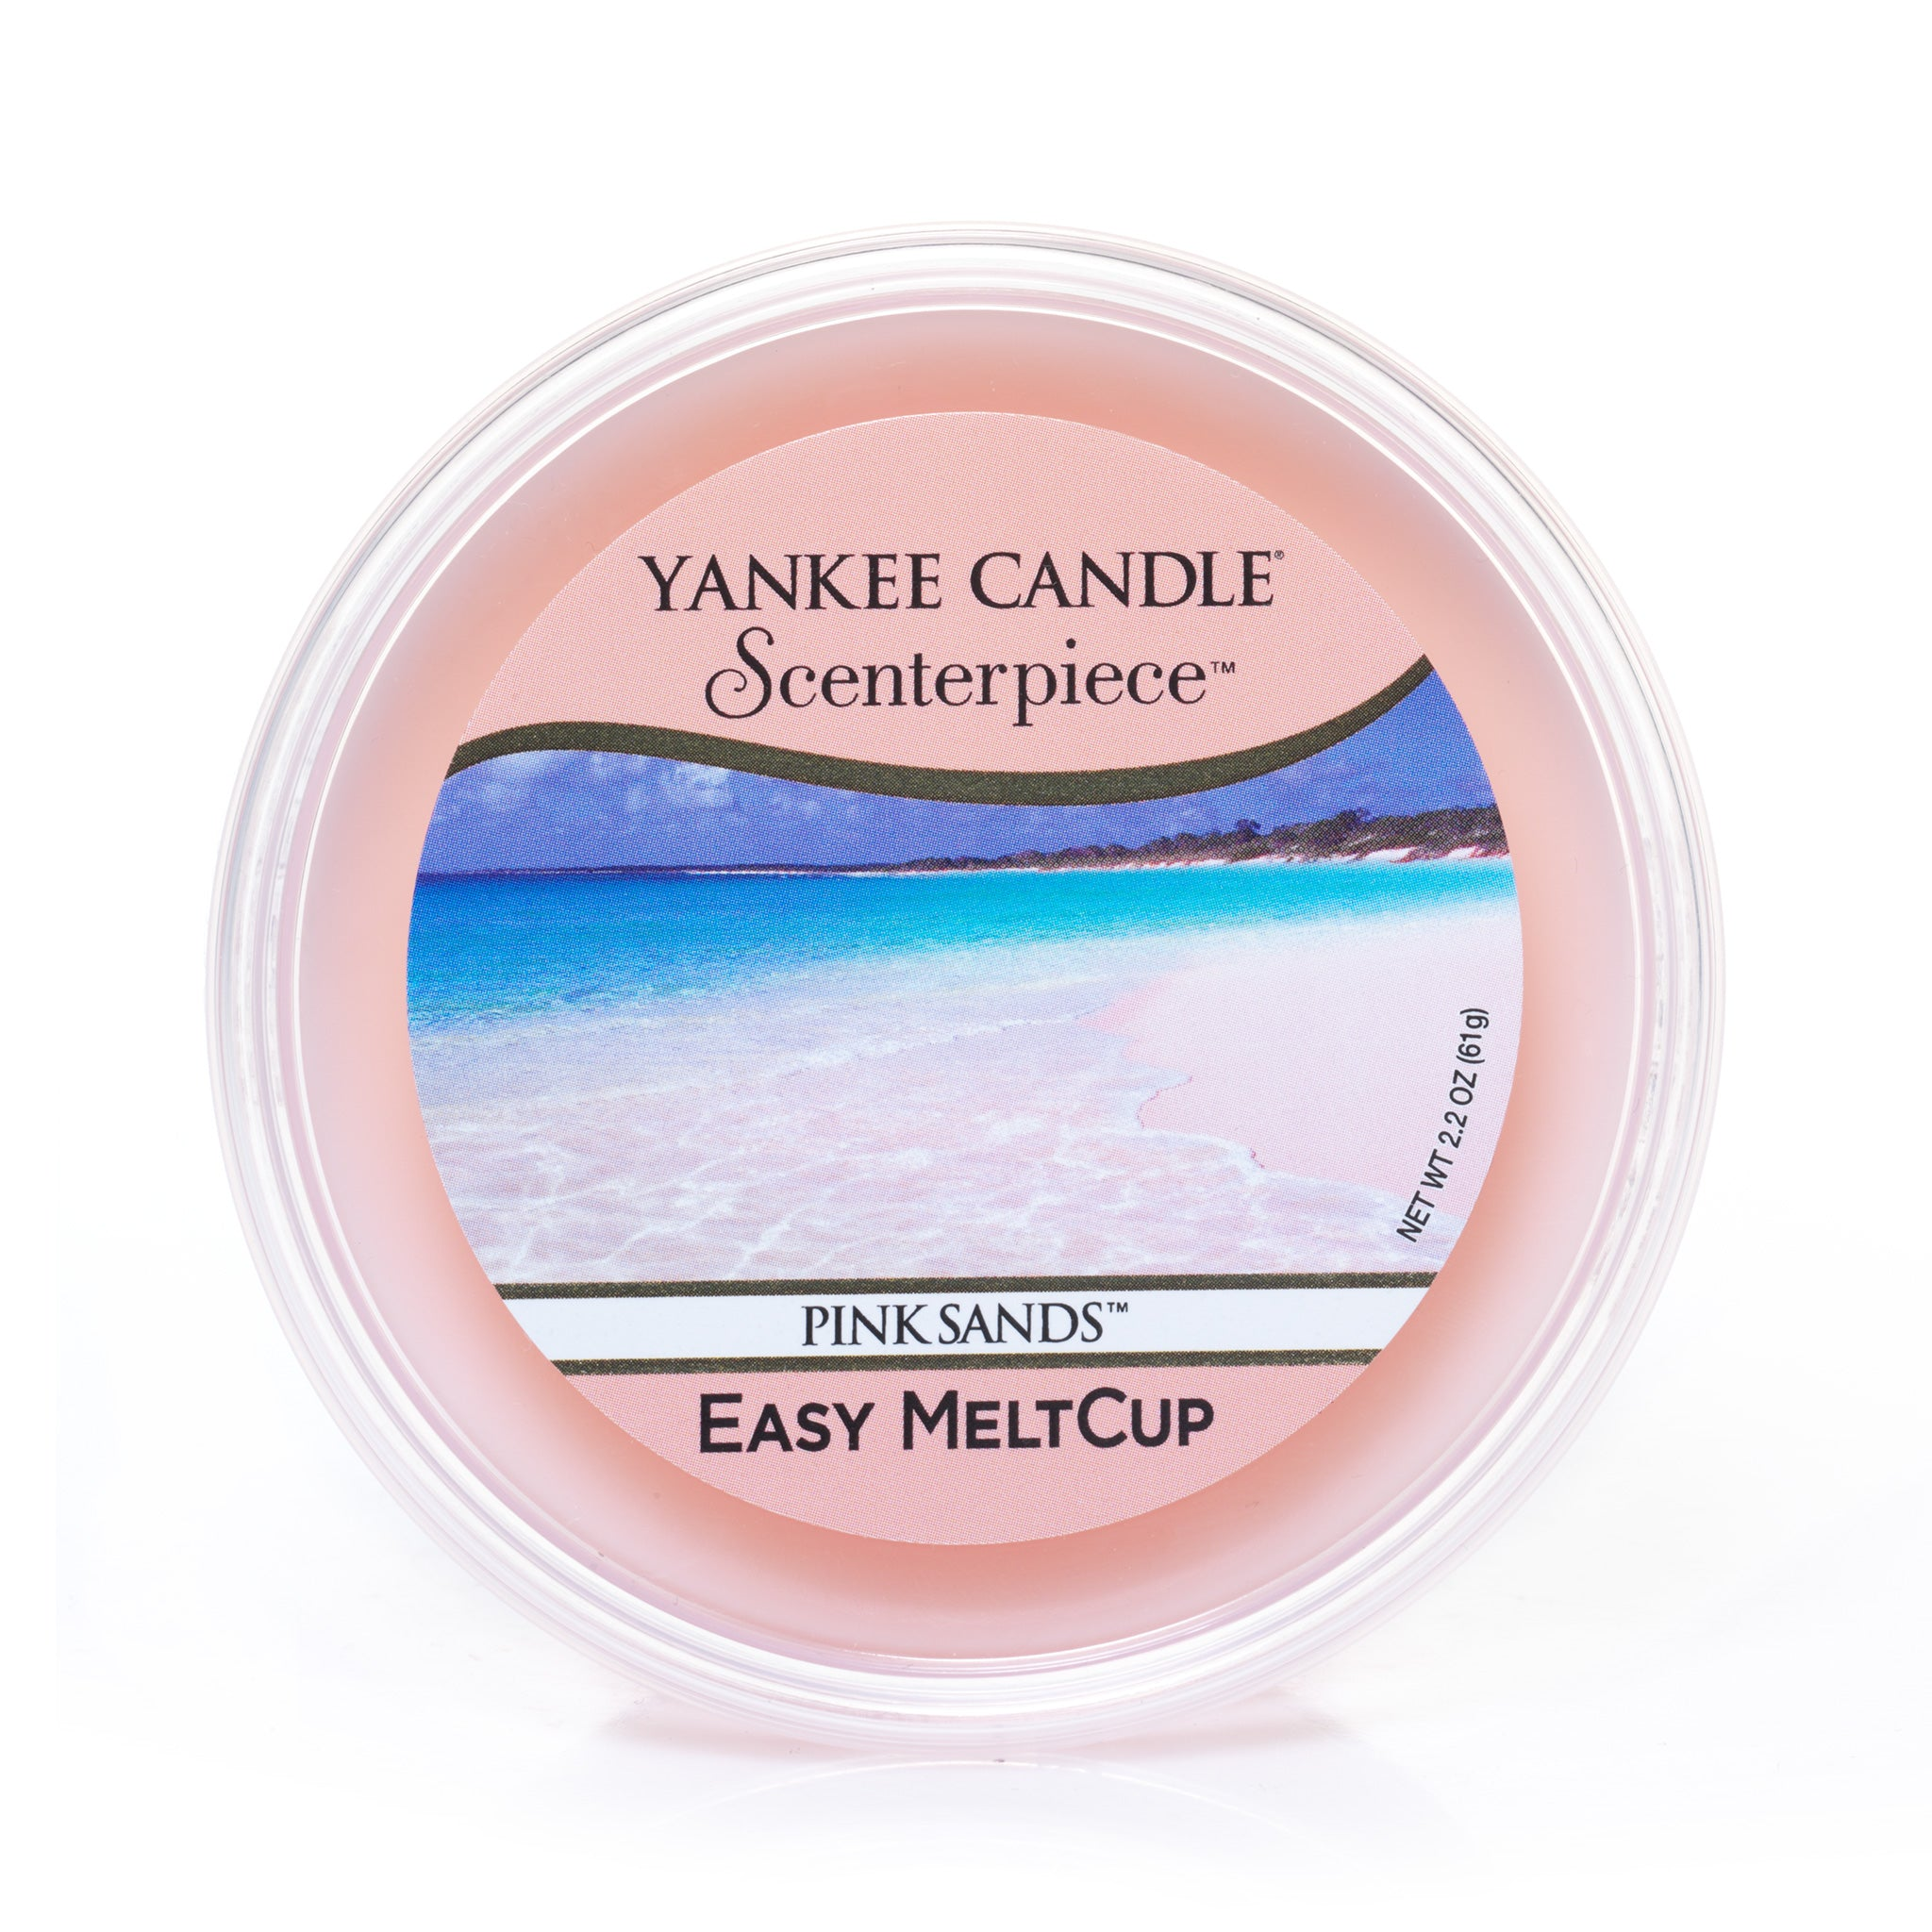 PINK SANDS -Yankee Candle- Easy MeltCup